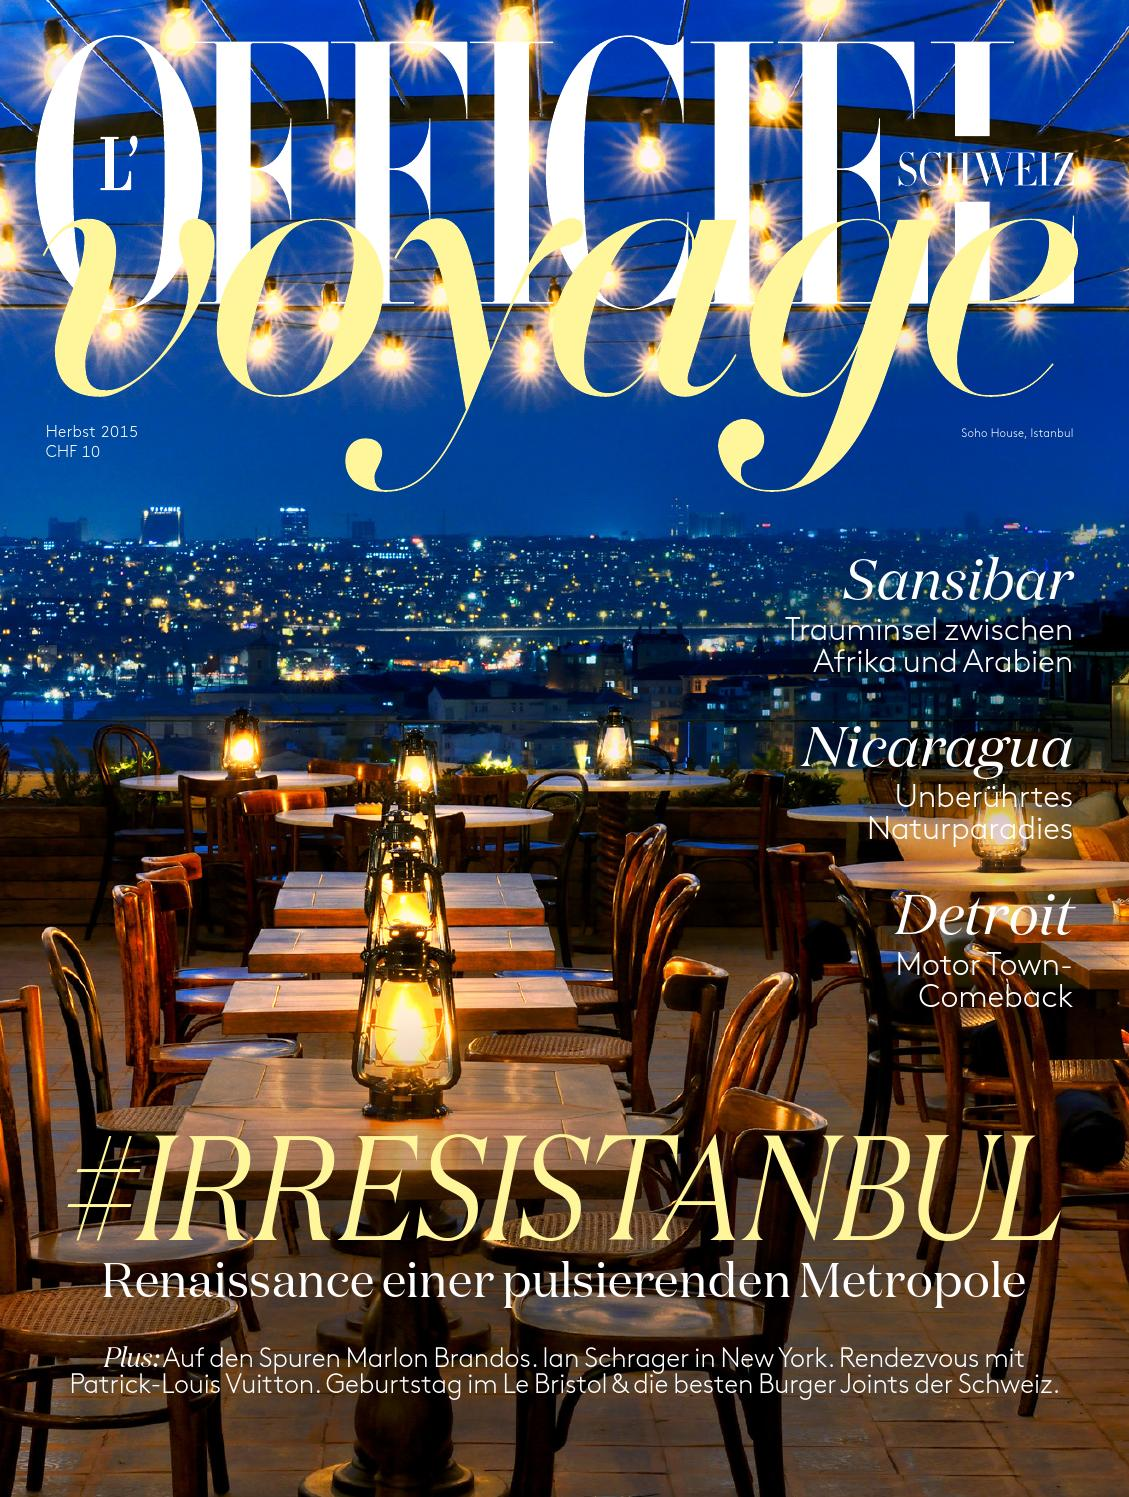 L Officiel Voyage No 03 Herbst 2015 Full Version By L Officiel Schweiz Suisse Issuu